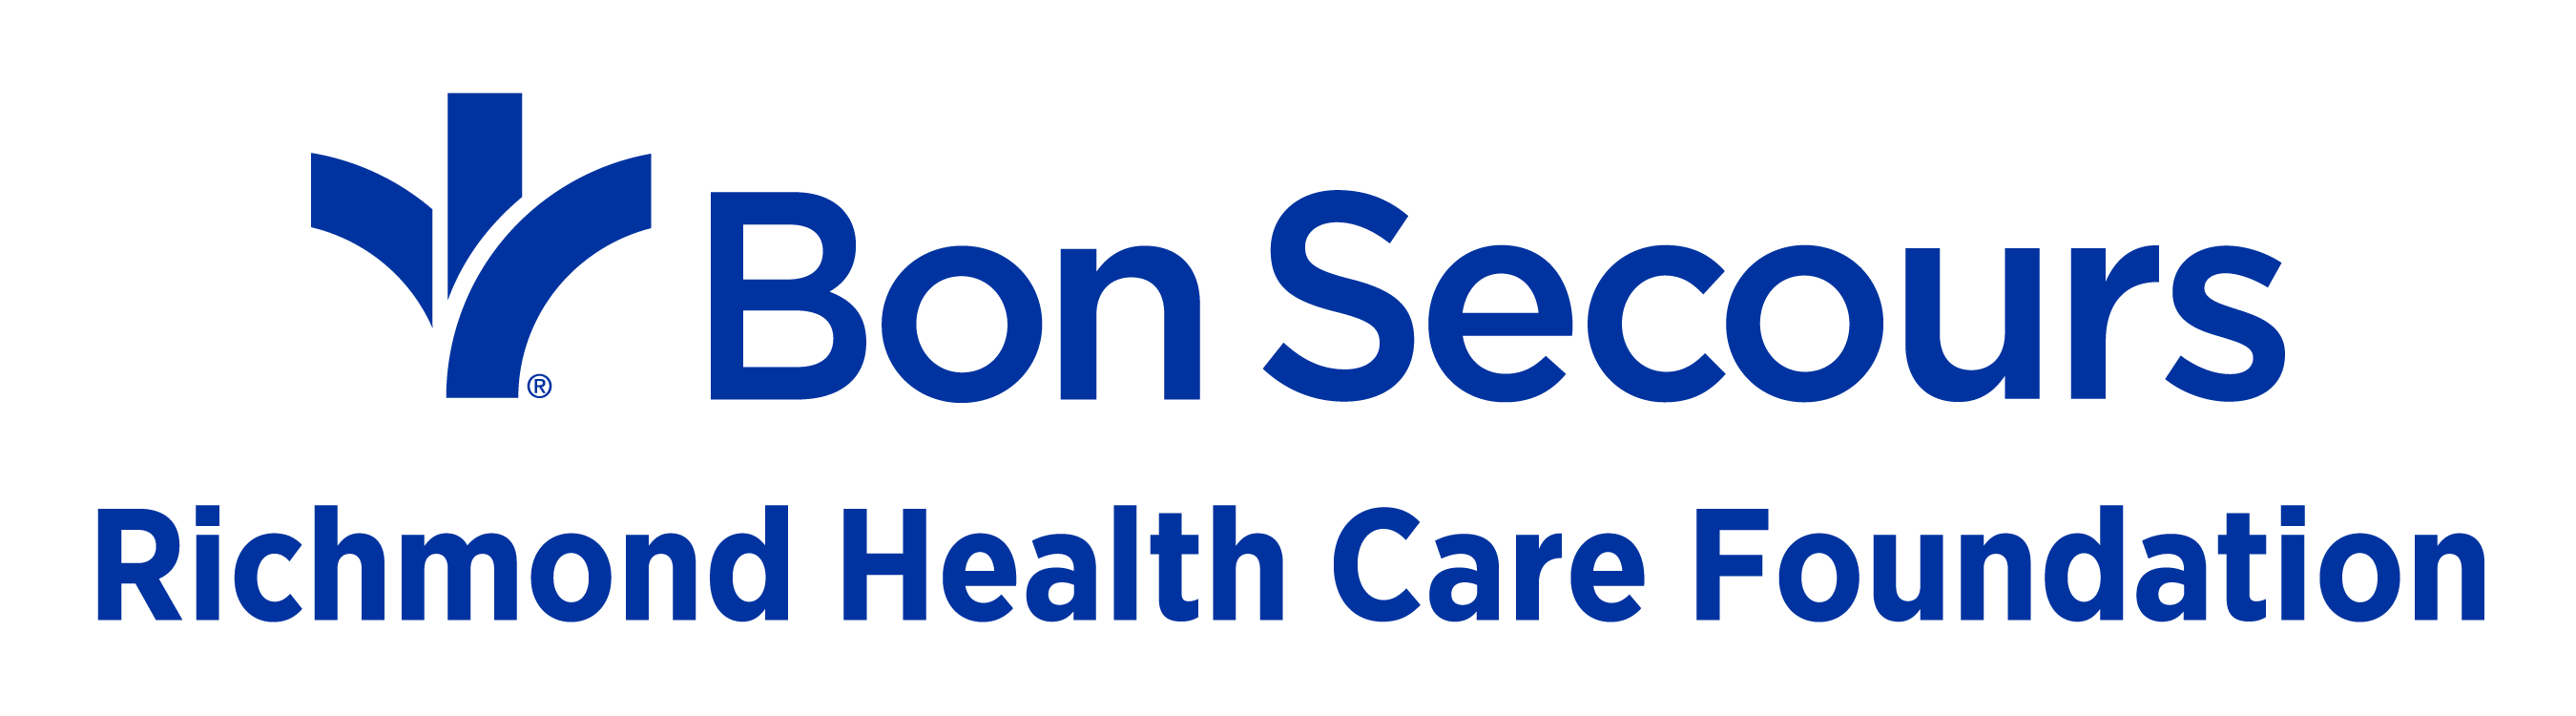 Bon Secours Richmond health care Foundation logo